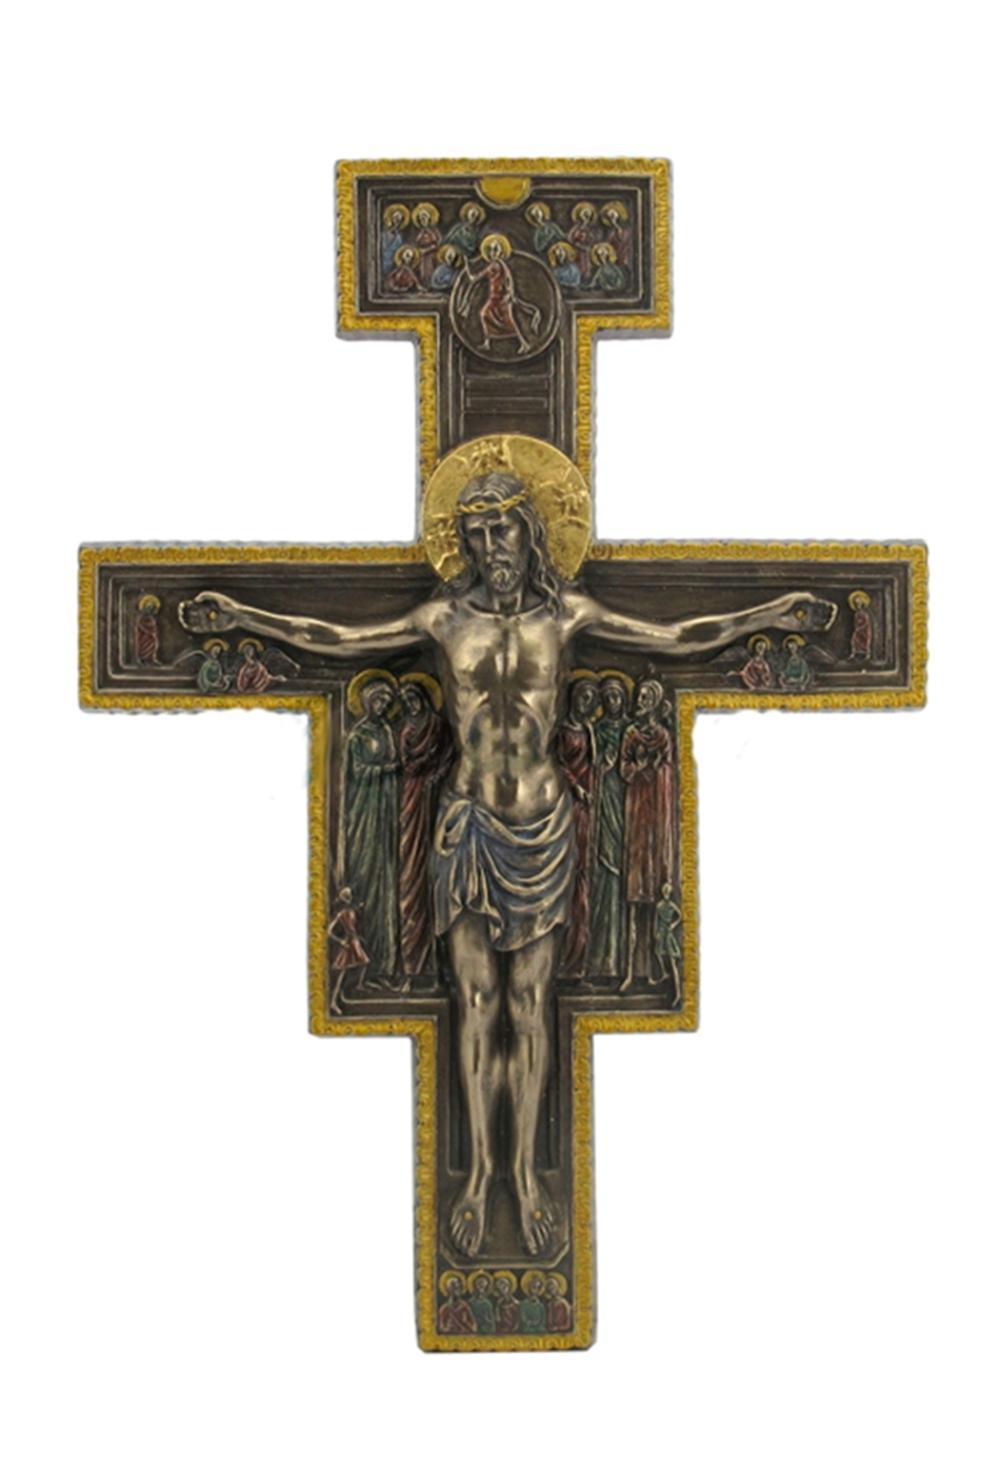 The San Damiano Crucifix Wall Plaque